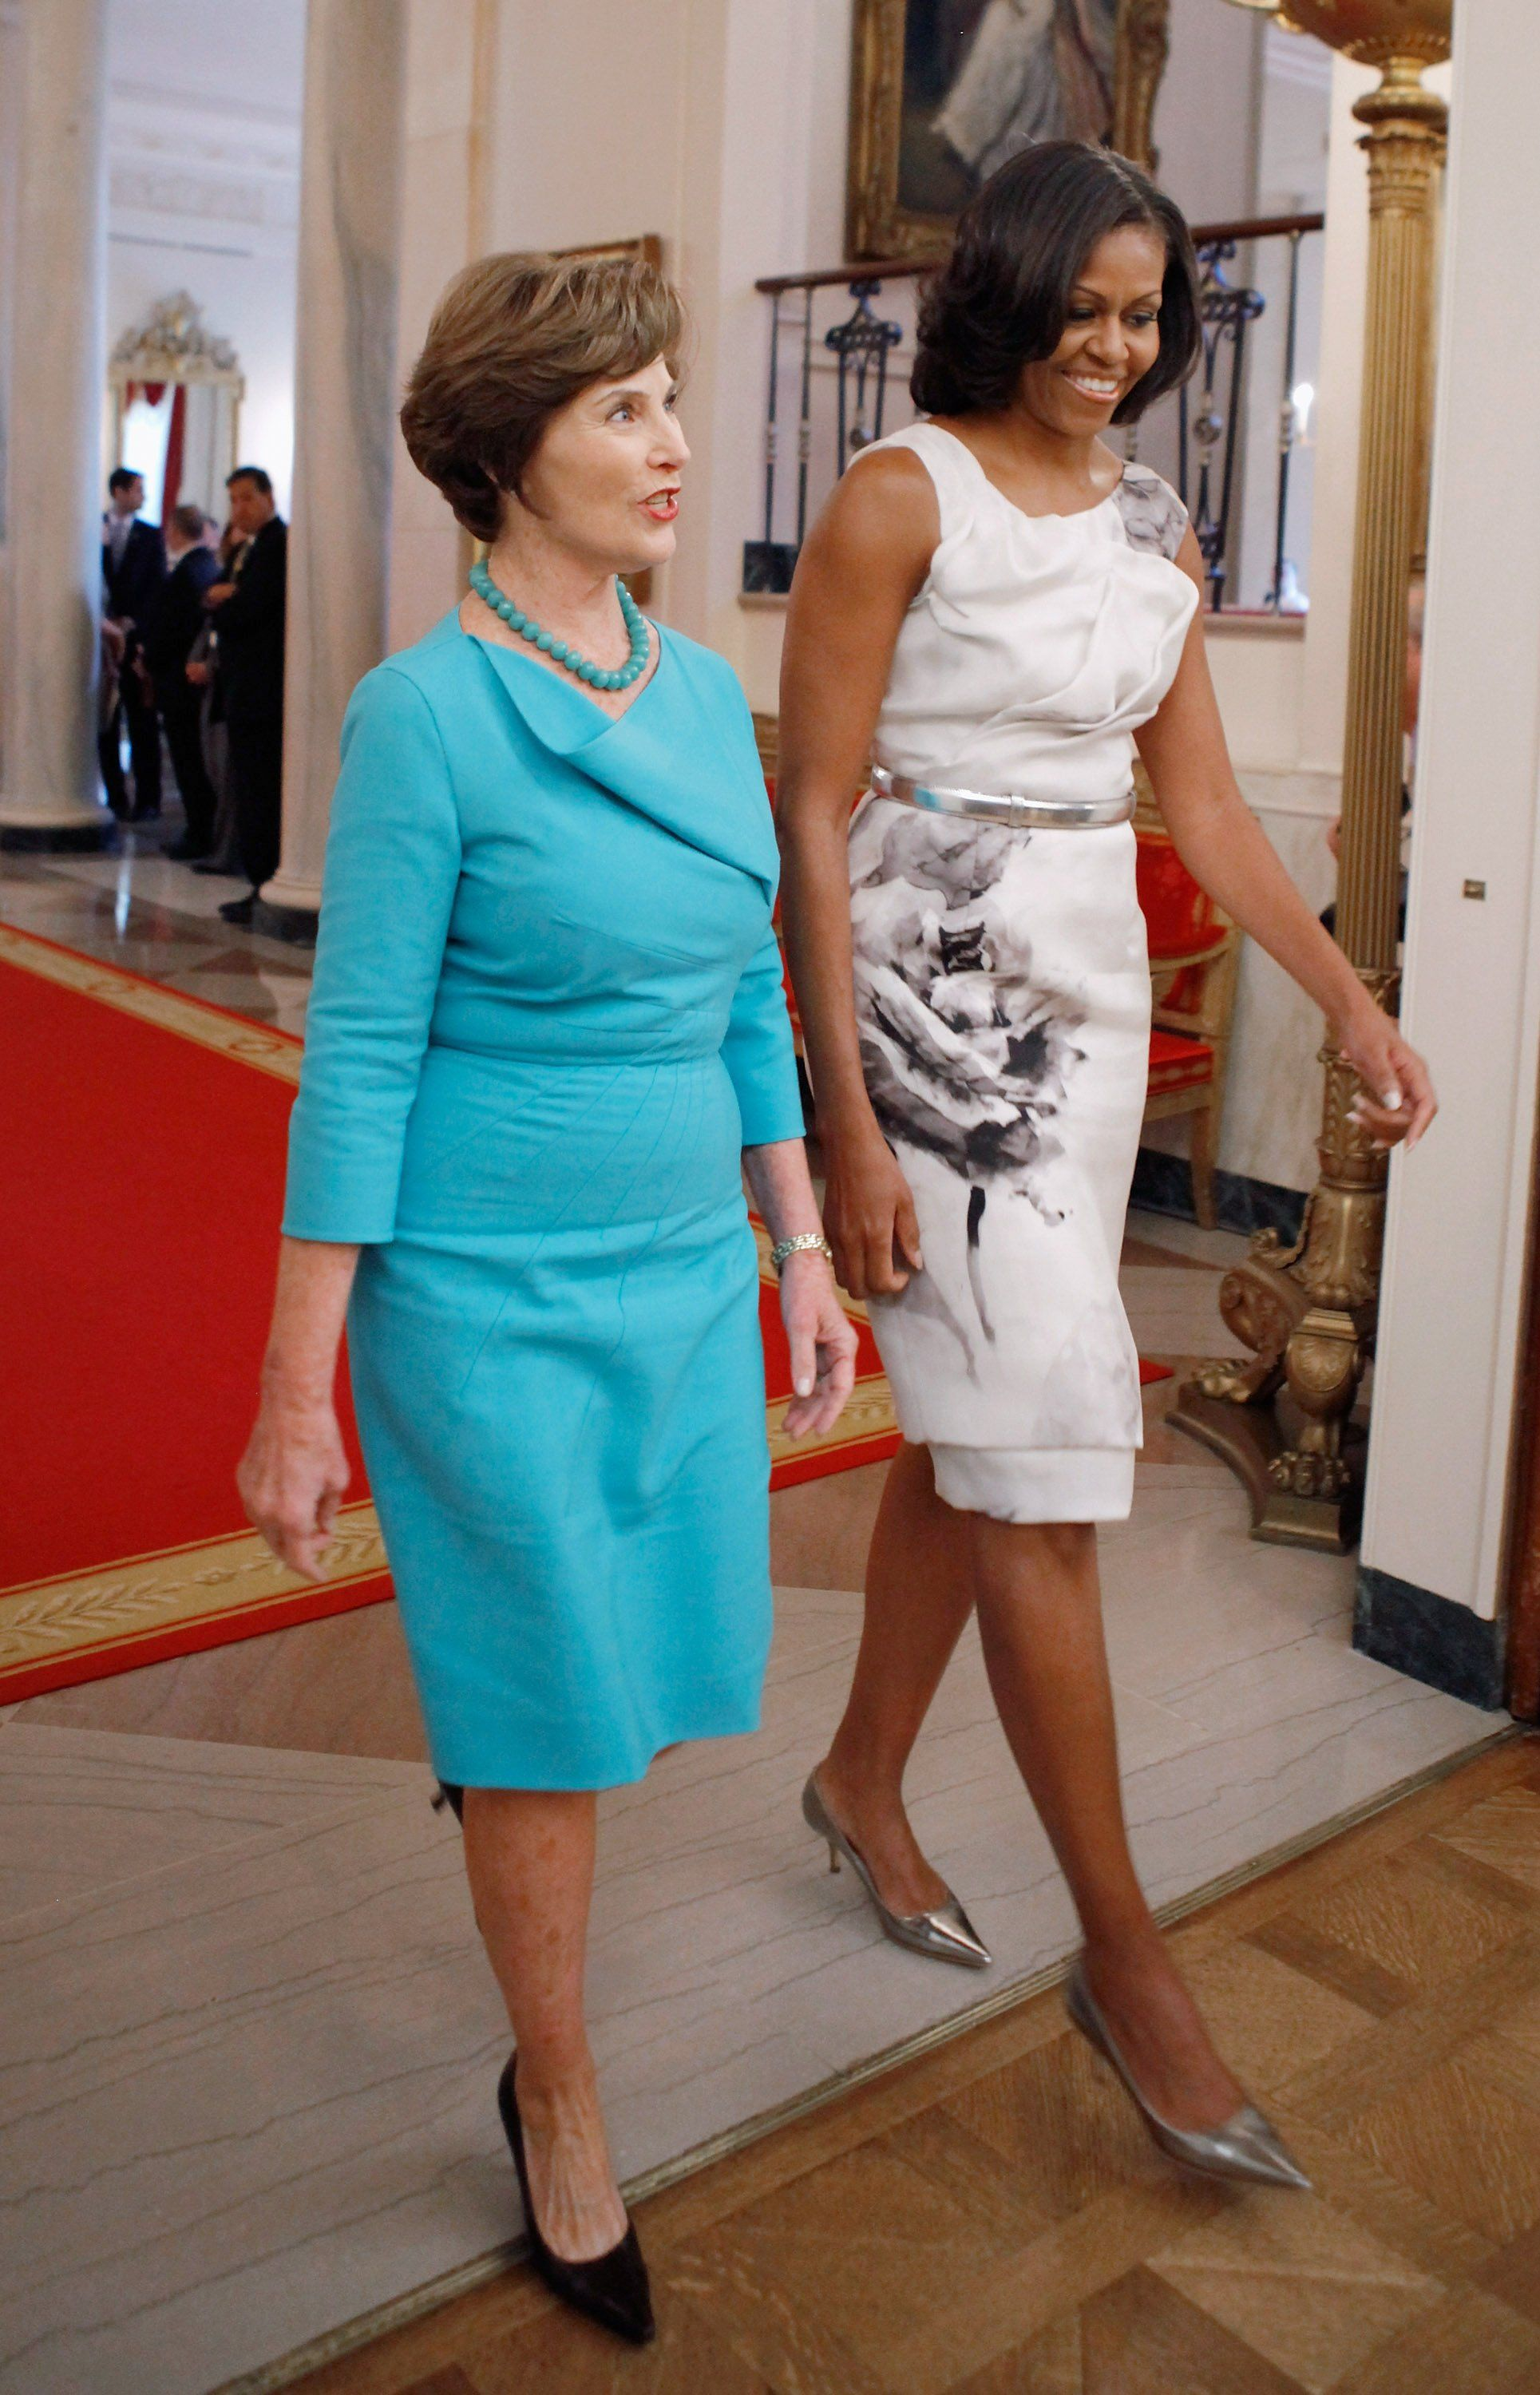 Michelle Obama S Latest Look Is Much More Than Just A Pretty Dress Michelle Obama Fashion Prabal Gurung Dress Michelle Obama [ 3000 x 1929 Pixel ]